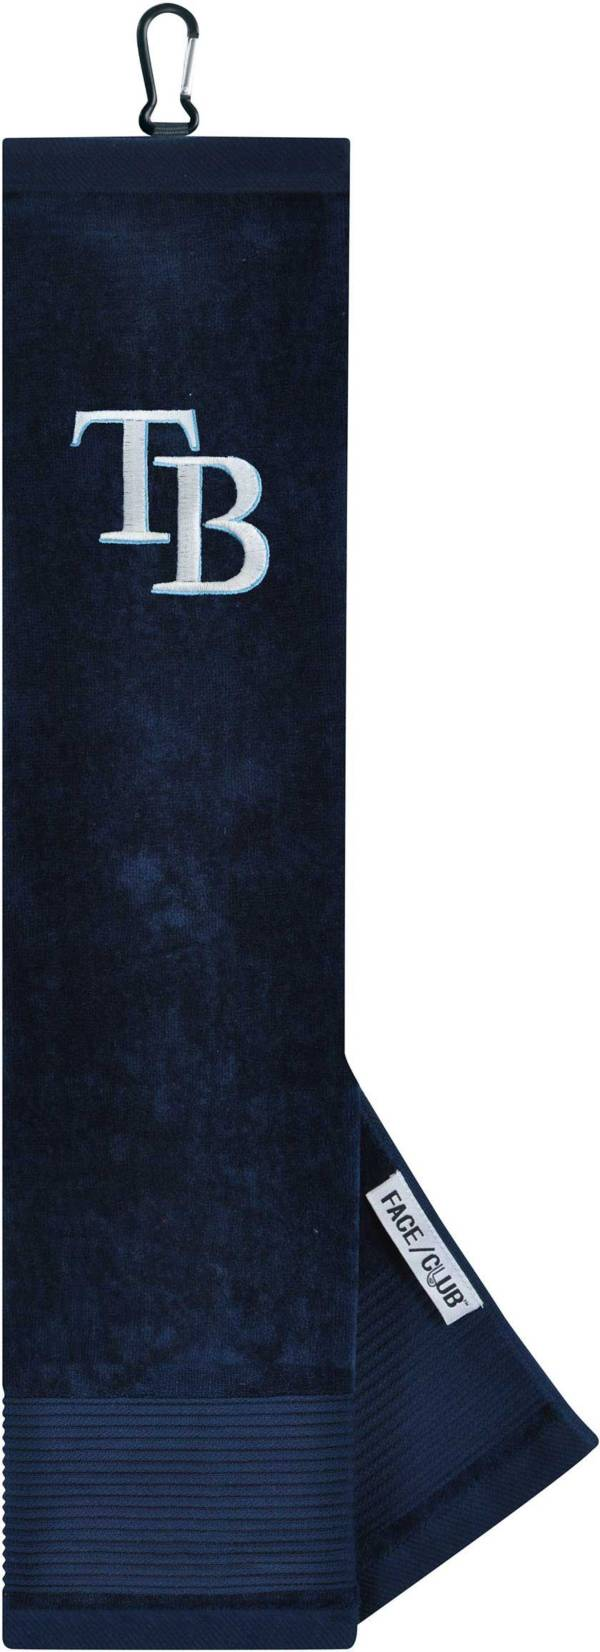 Team Effort Tampa Bay Rays Embroidered Face/Club Tri-Fold Towel product image